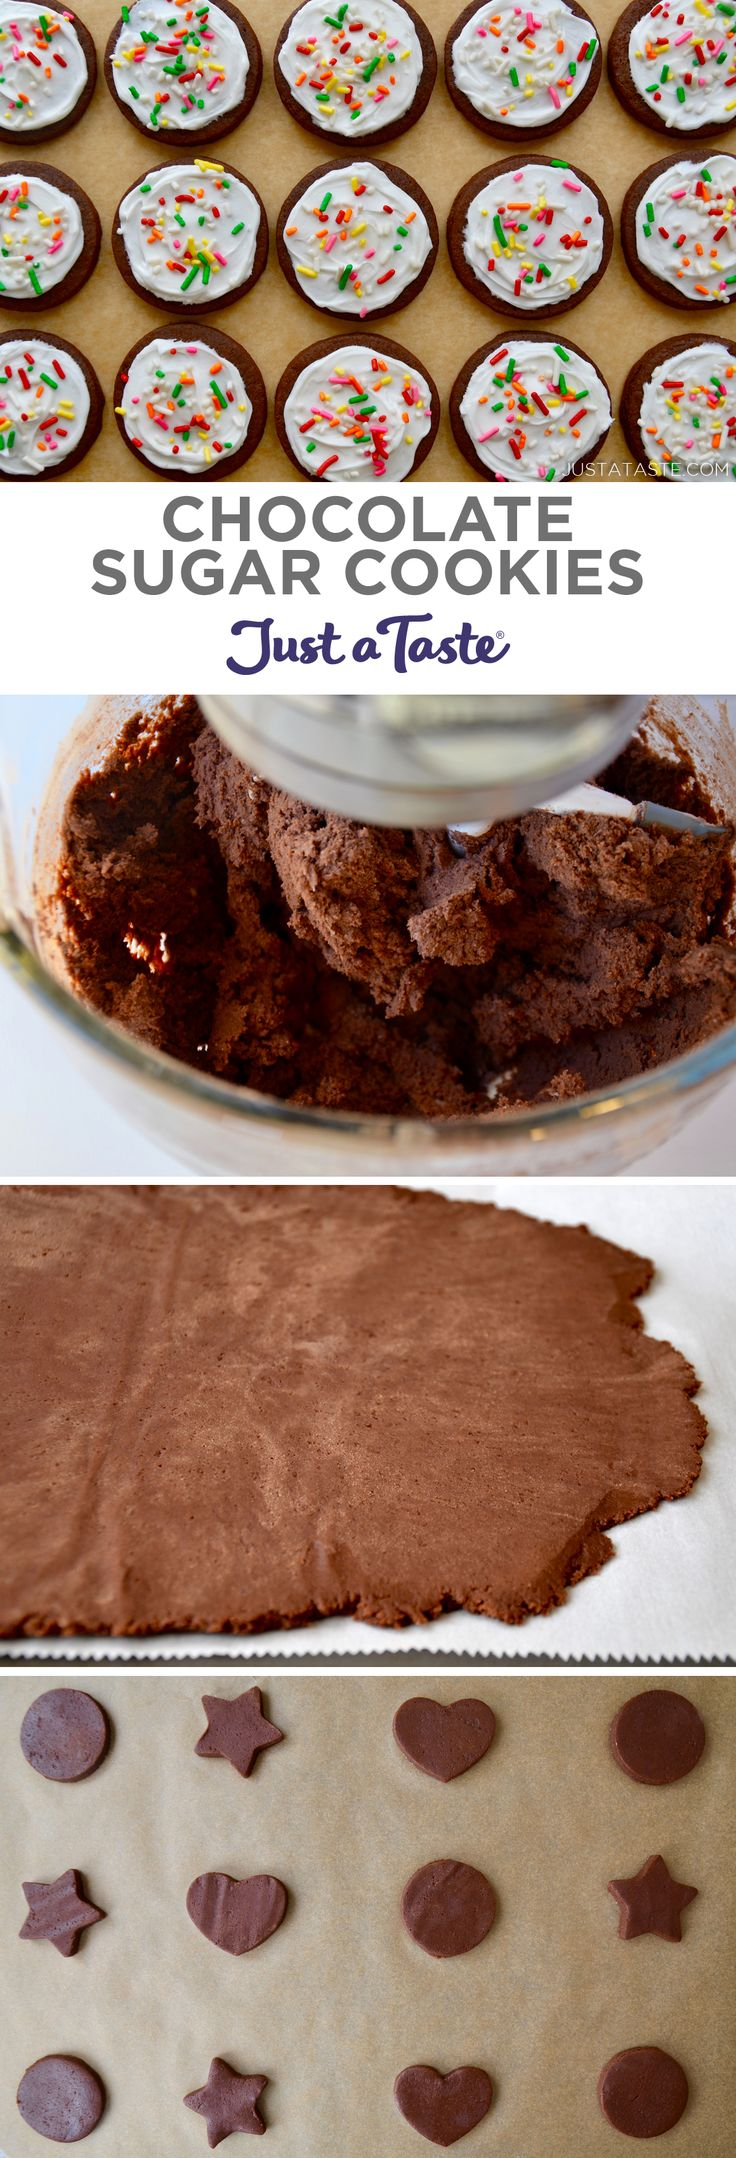 Chocolate Sugar Cookies recipe from justataste.com #recipes #christmas #holidaybaking #holidays